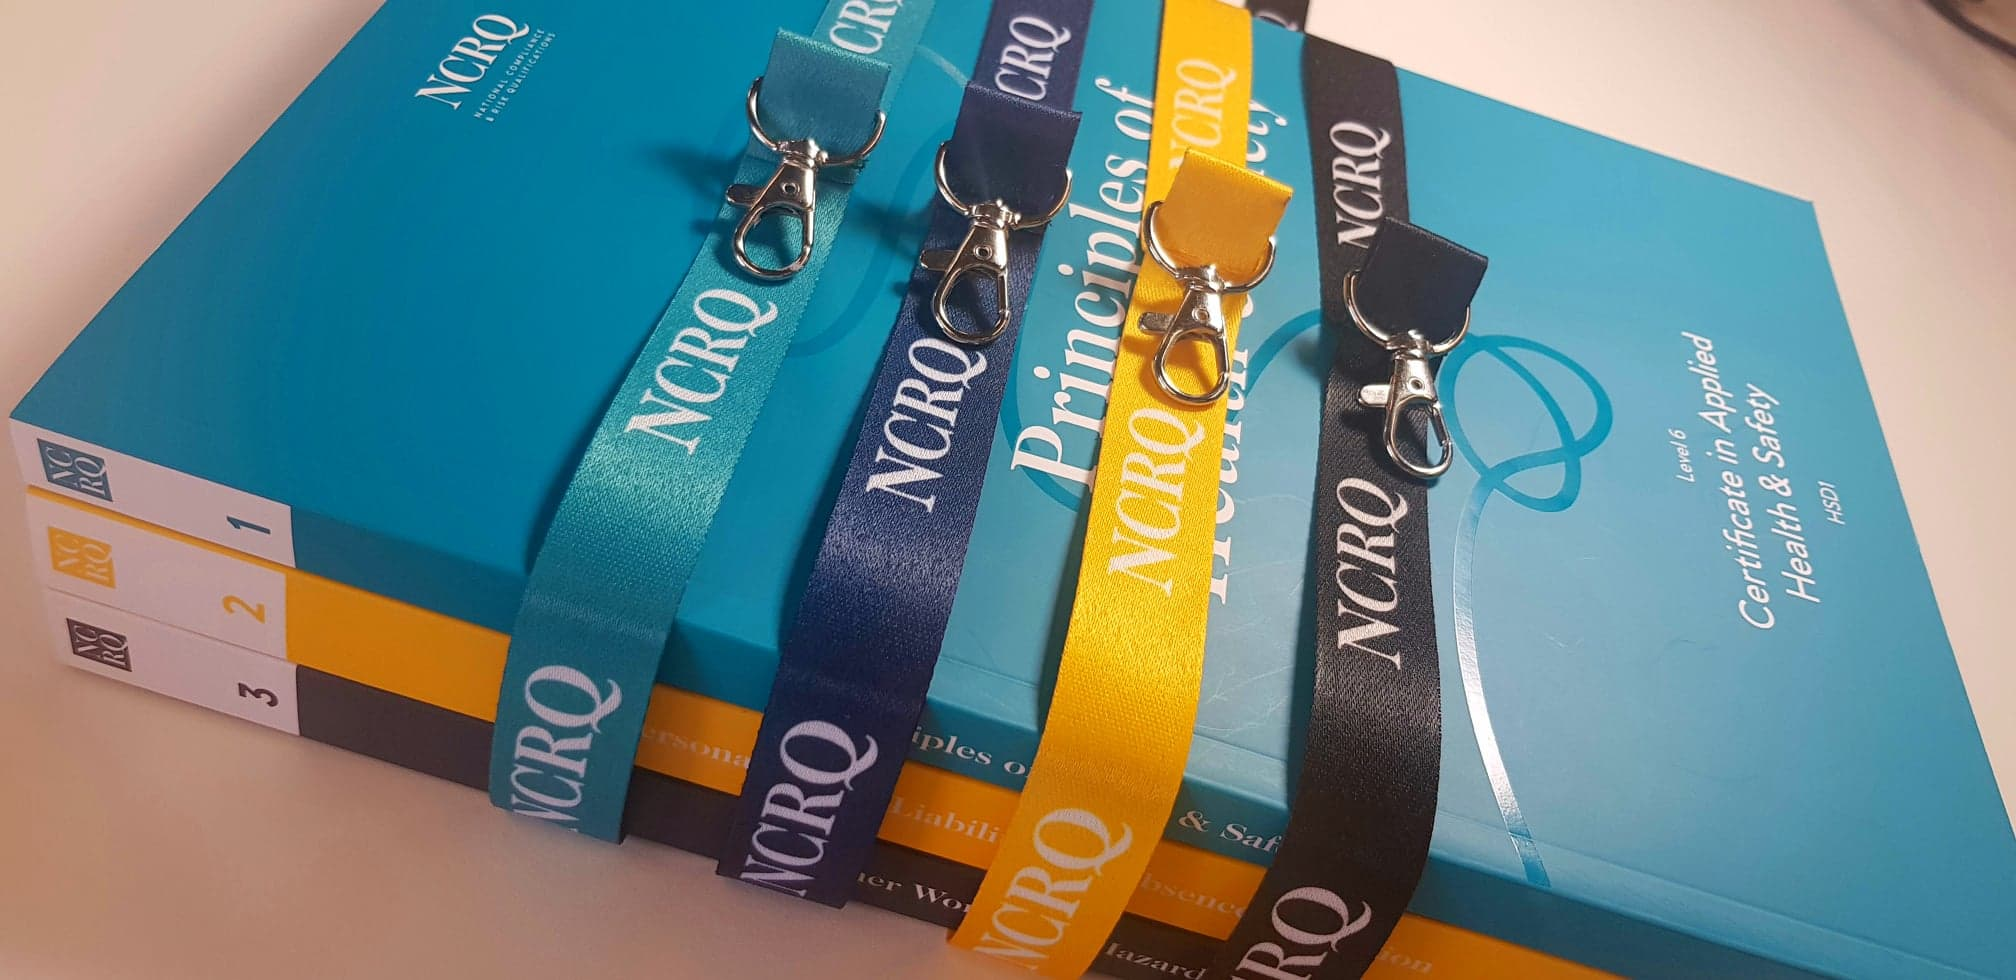 NCRQ lanyards and workbooks